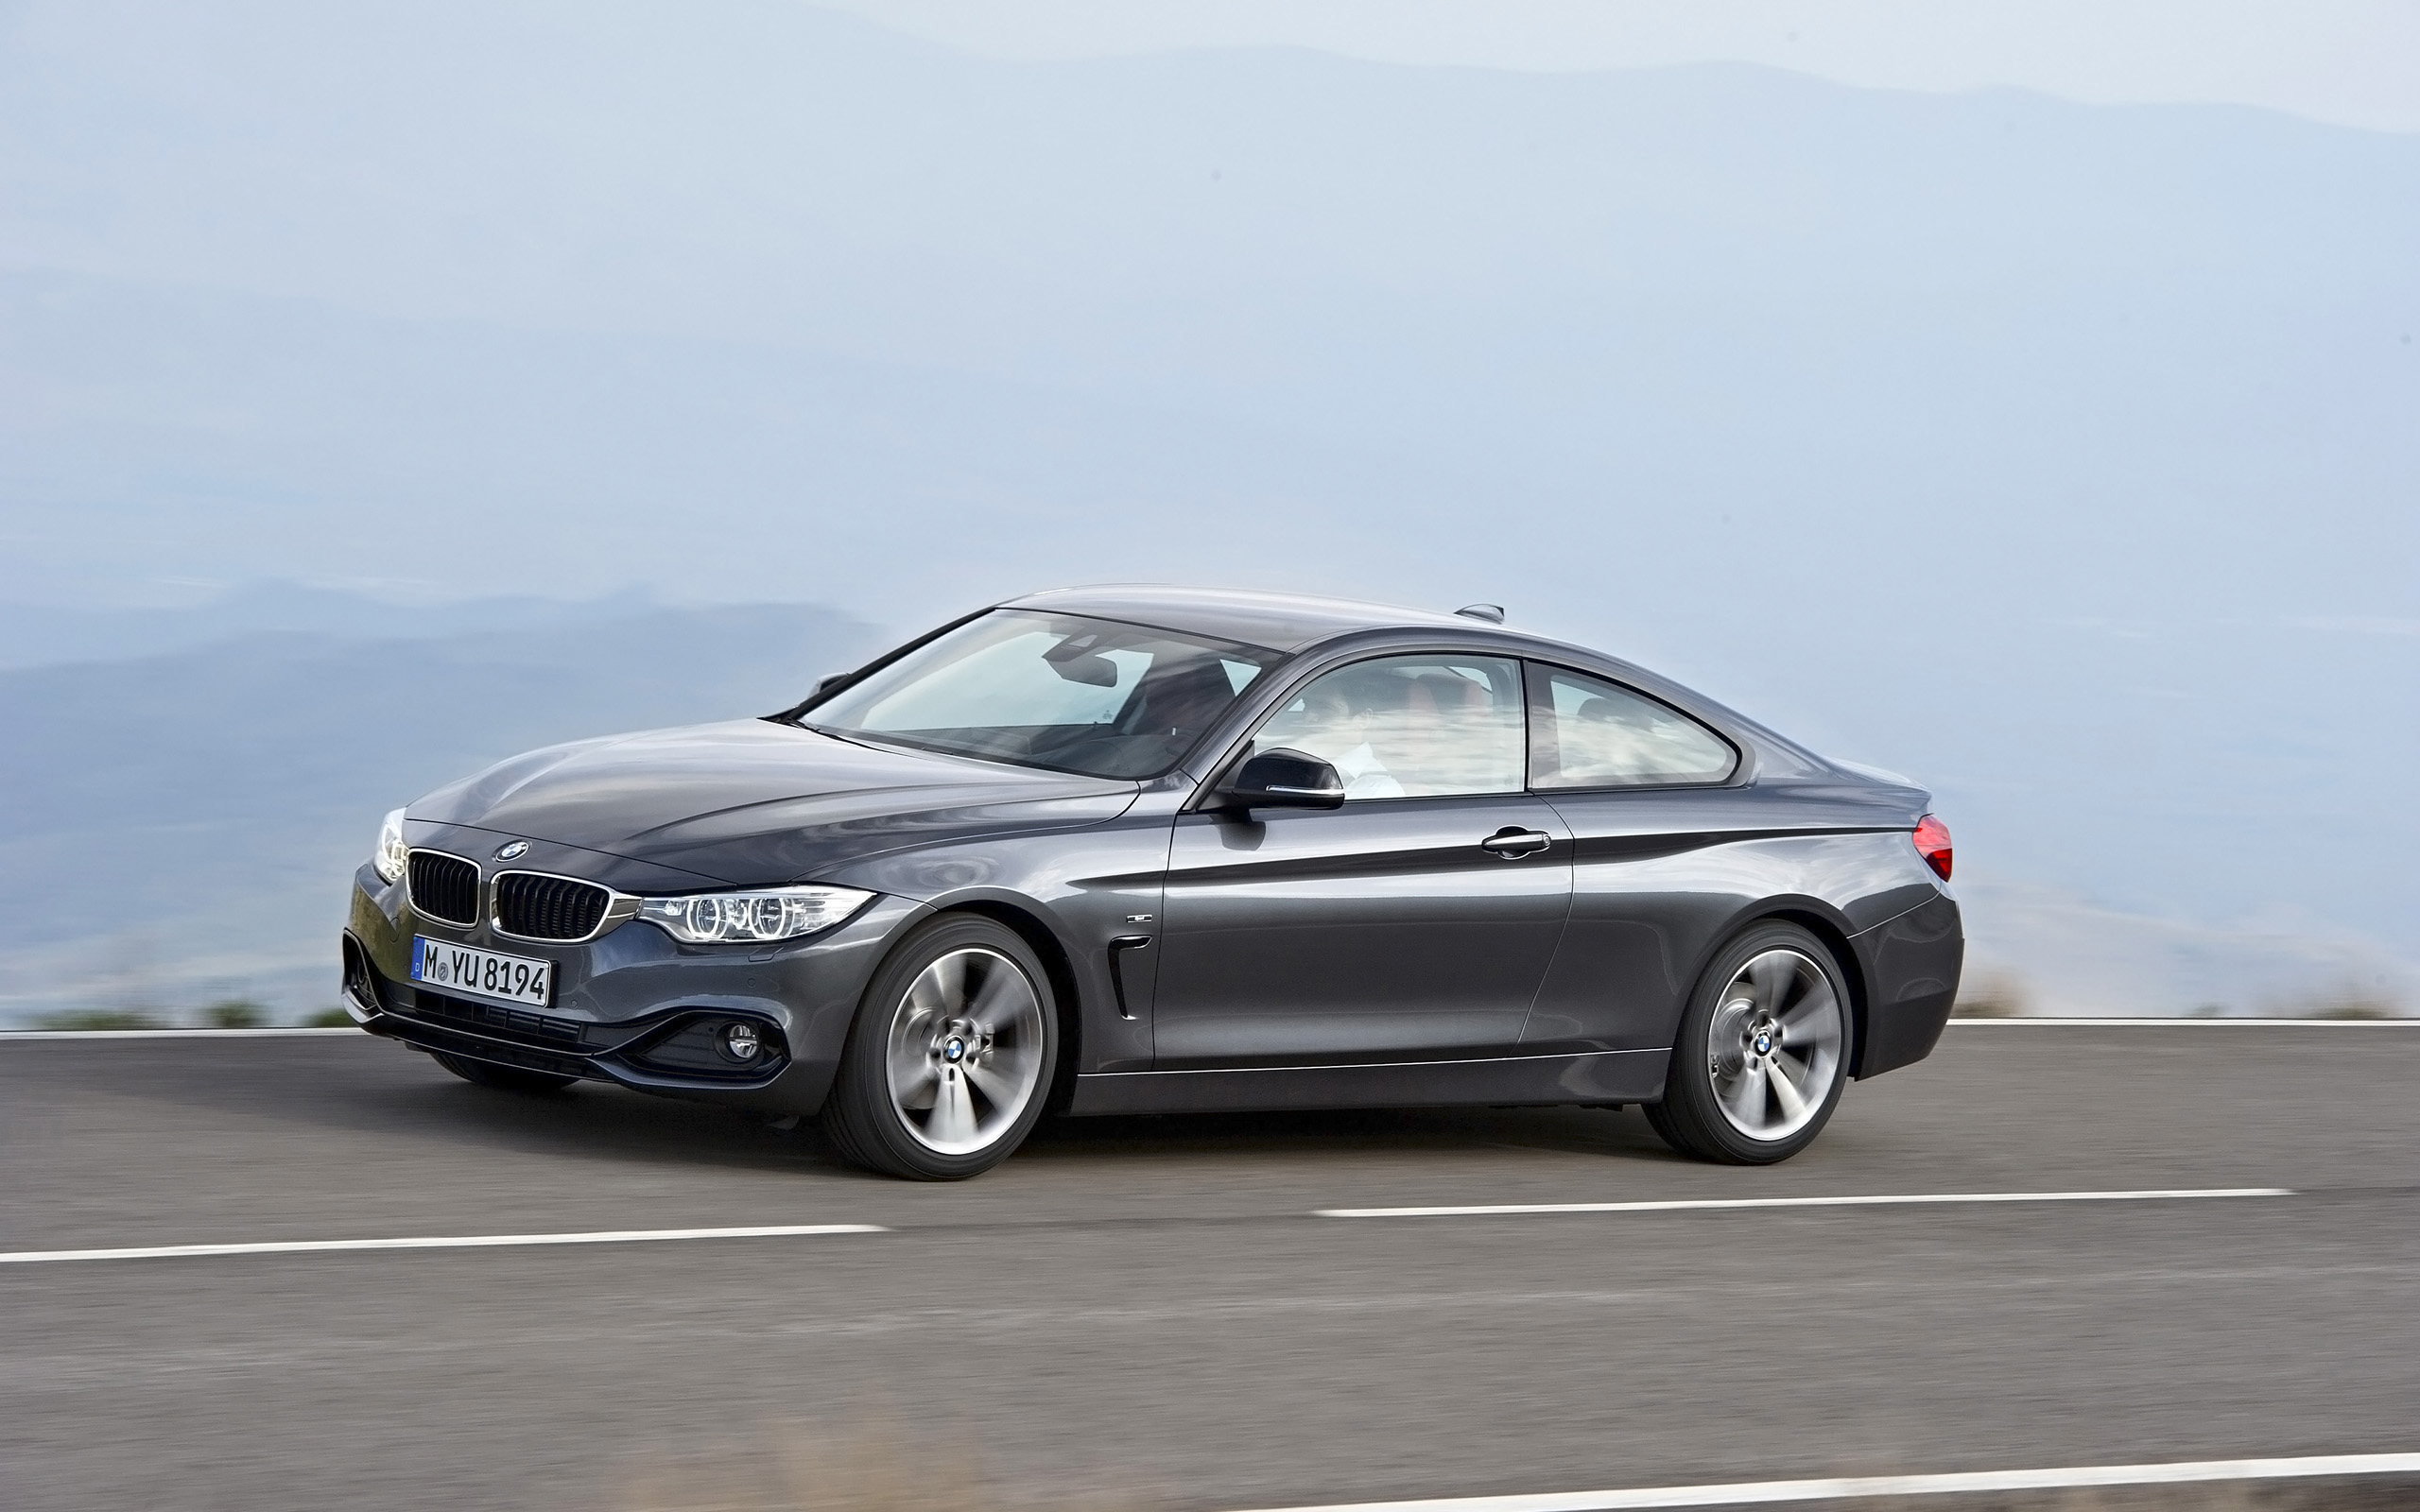 BMW 4 series 418d 2013 photo - 2